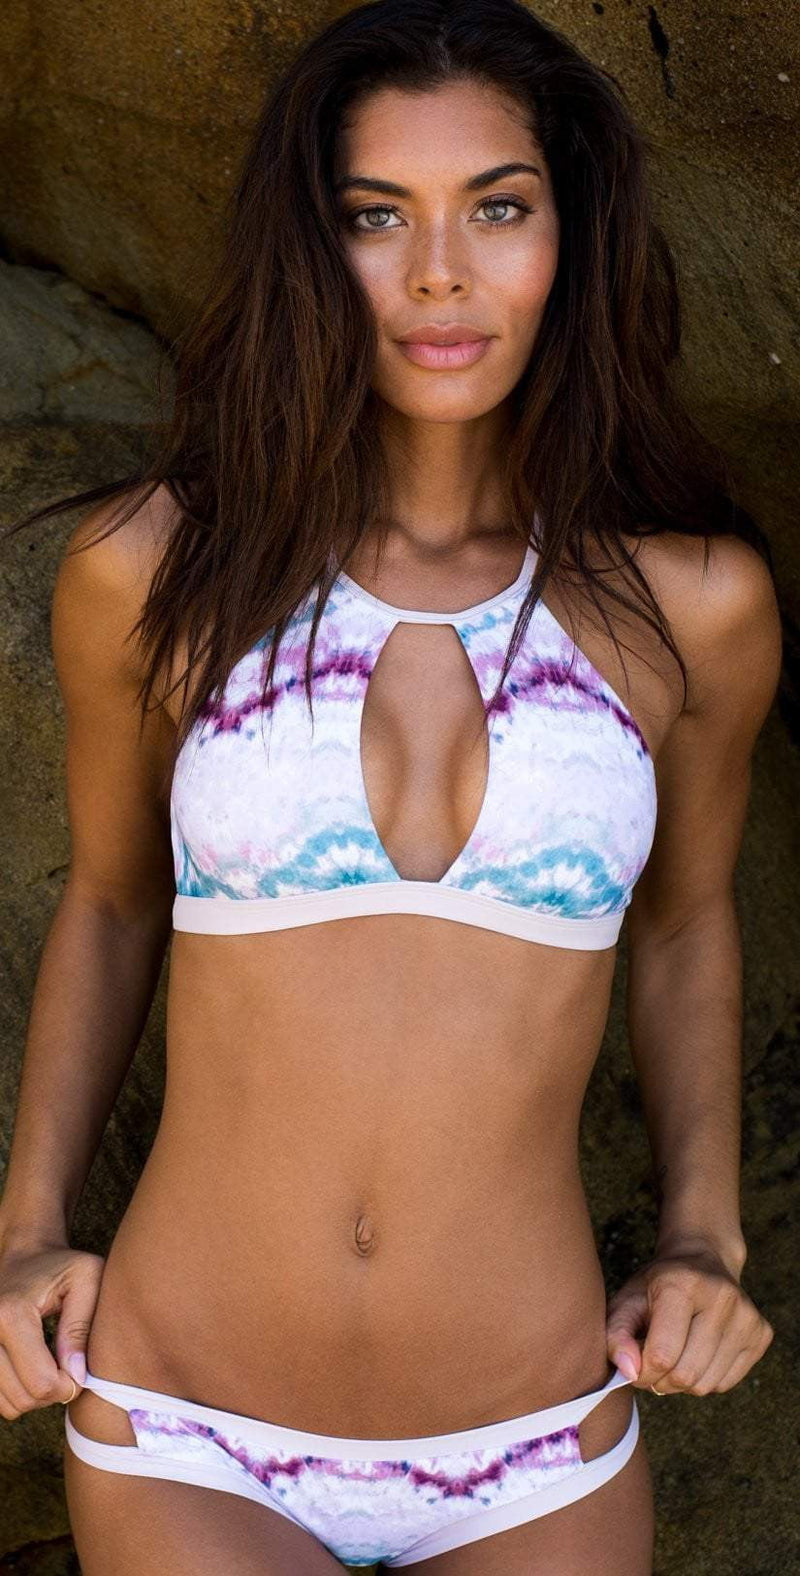 B. Swim Makai Tie Dye Waterfall High Neck Bikini Top U82-MATD: